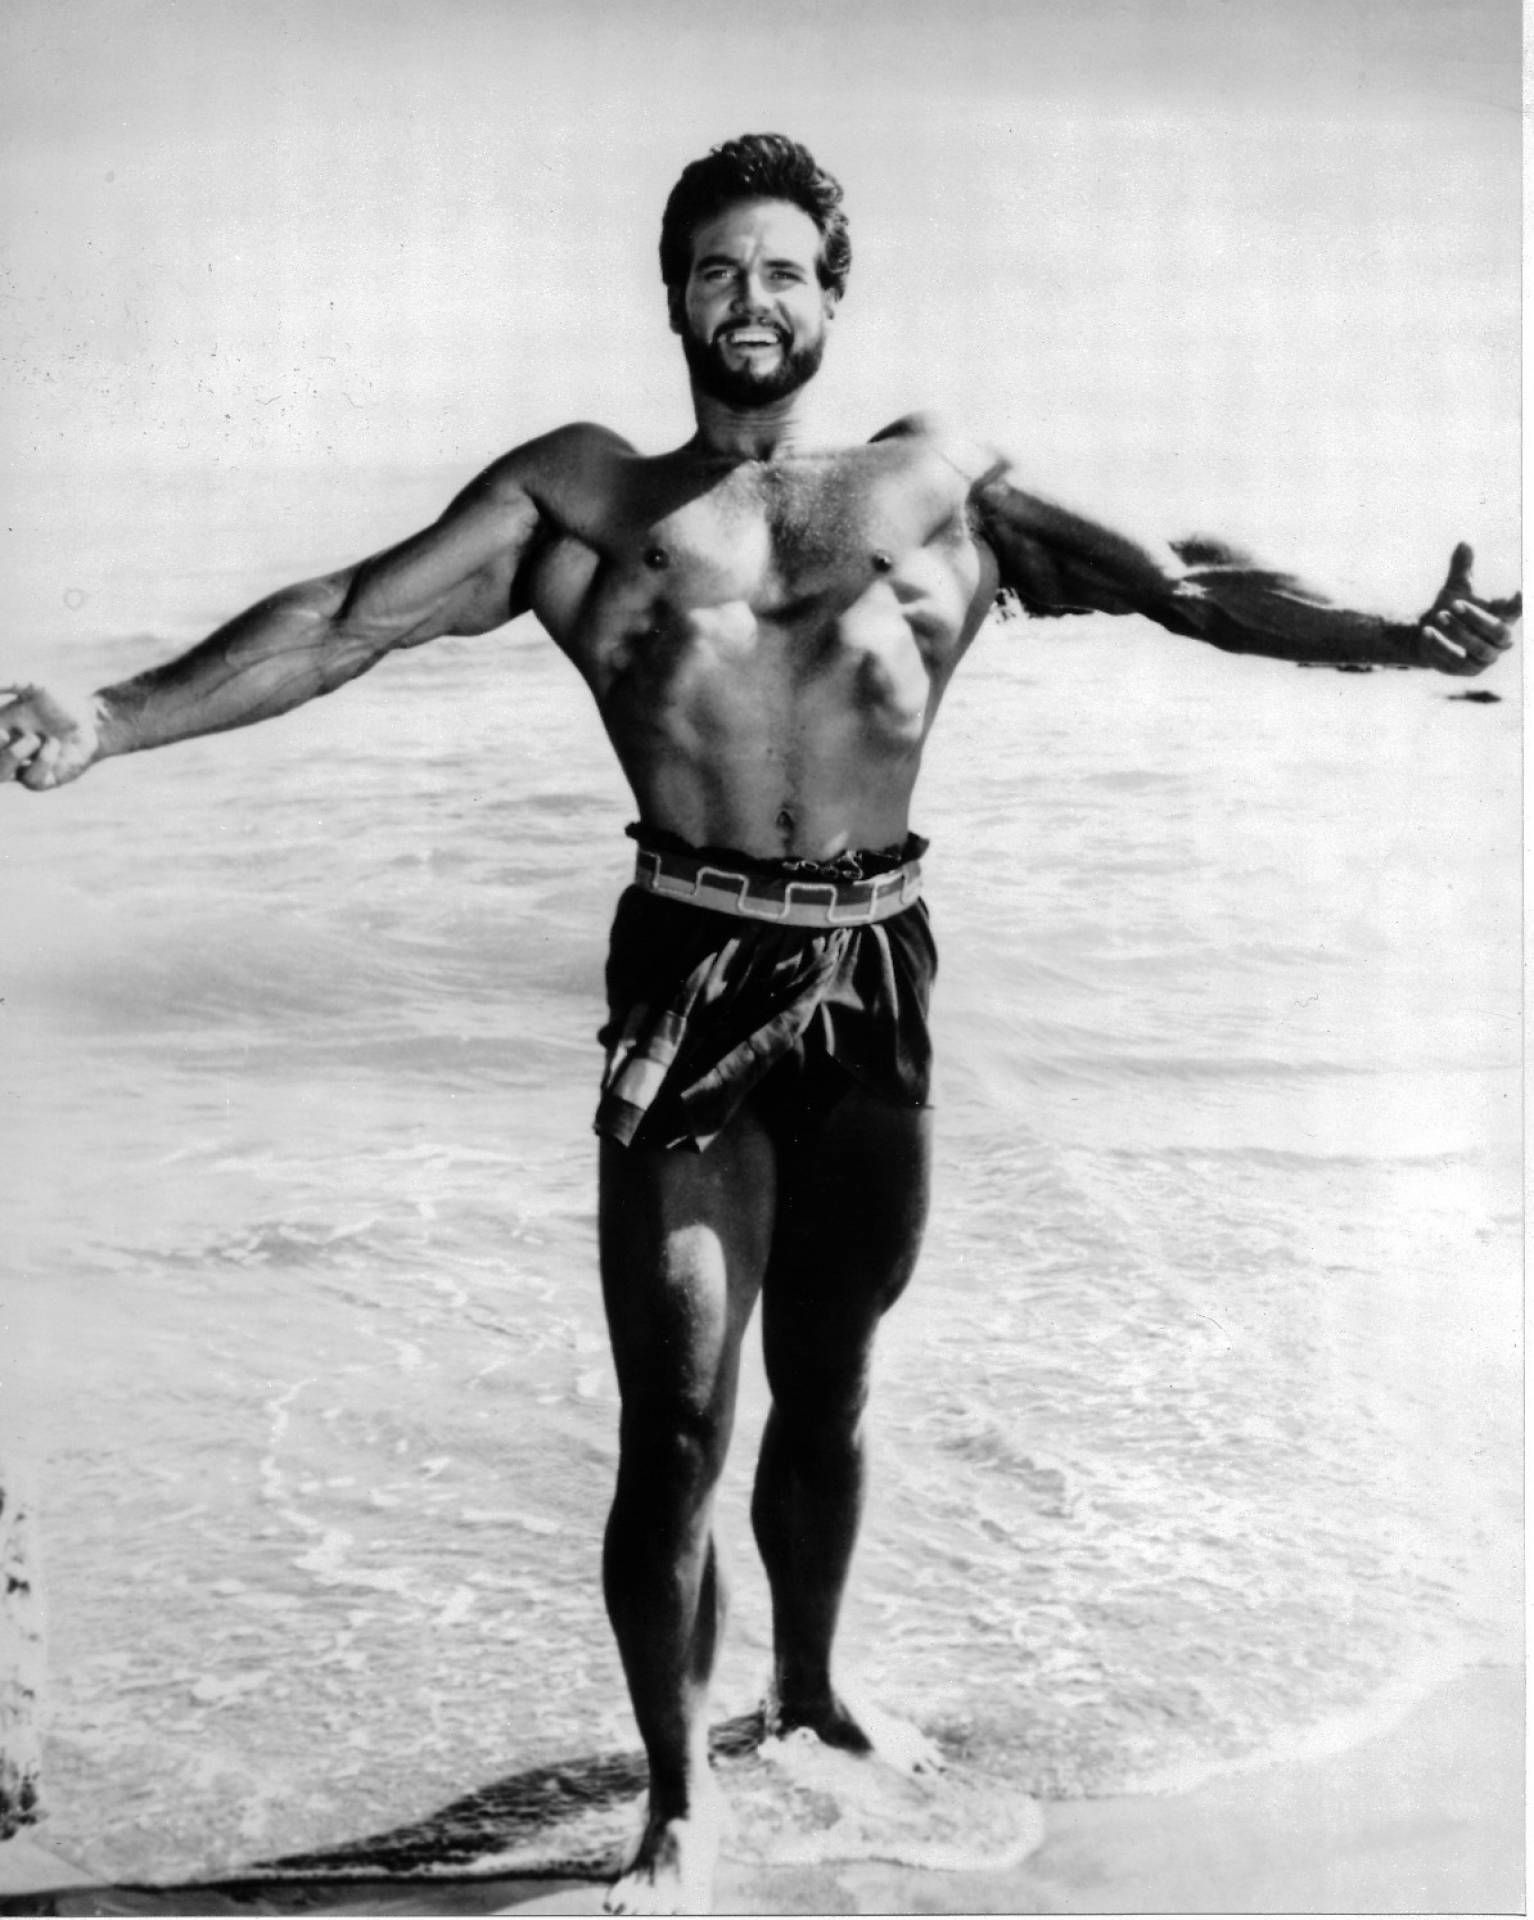 steve reeves trainingsteve reeves hercules, steve reeves wife, steve reeves program, steve reeves wallpapers, steve reeves training, steve reeves director, steve reeves bodybuilding, steve reeves book, steve reeves biceps, steve reeves and arnold schwarzenegger, steve reeves photo, steve reeves height weight, steve reeves rare photos, steve reeves sizes, steve reeves wiki, steve reeves training program, steve reeves chest workout, steve reeves workout, steve reeves book download, steve reeves bodybuilder